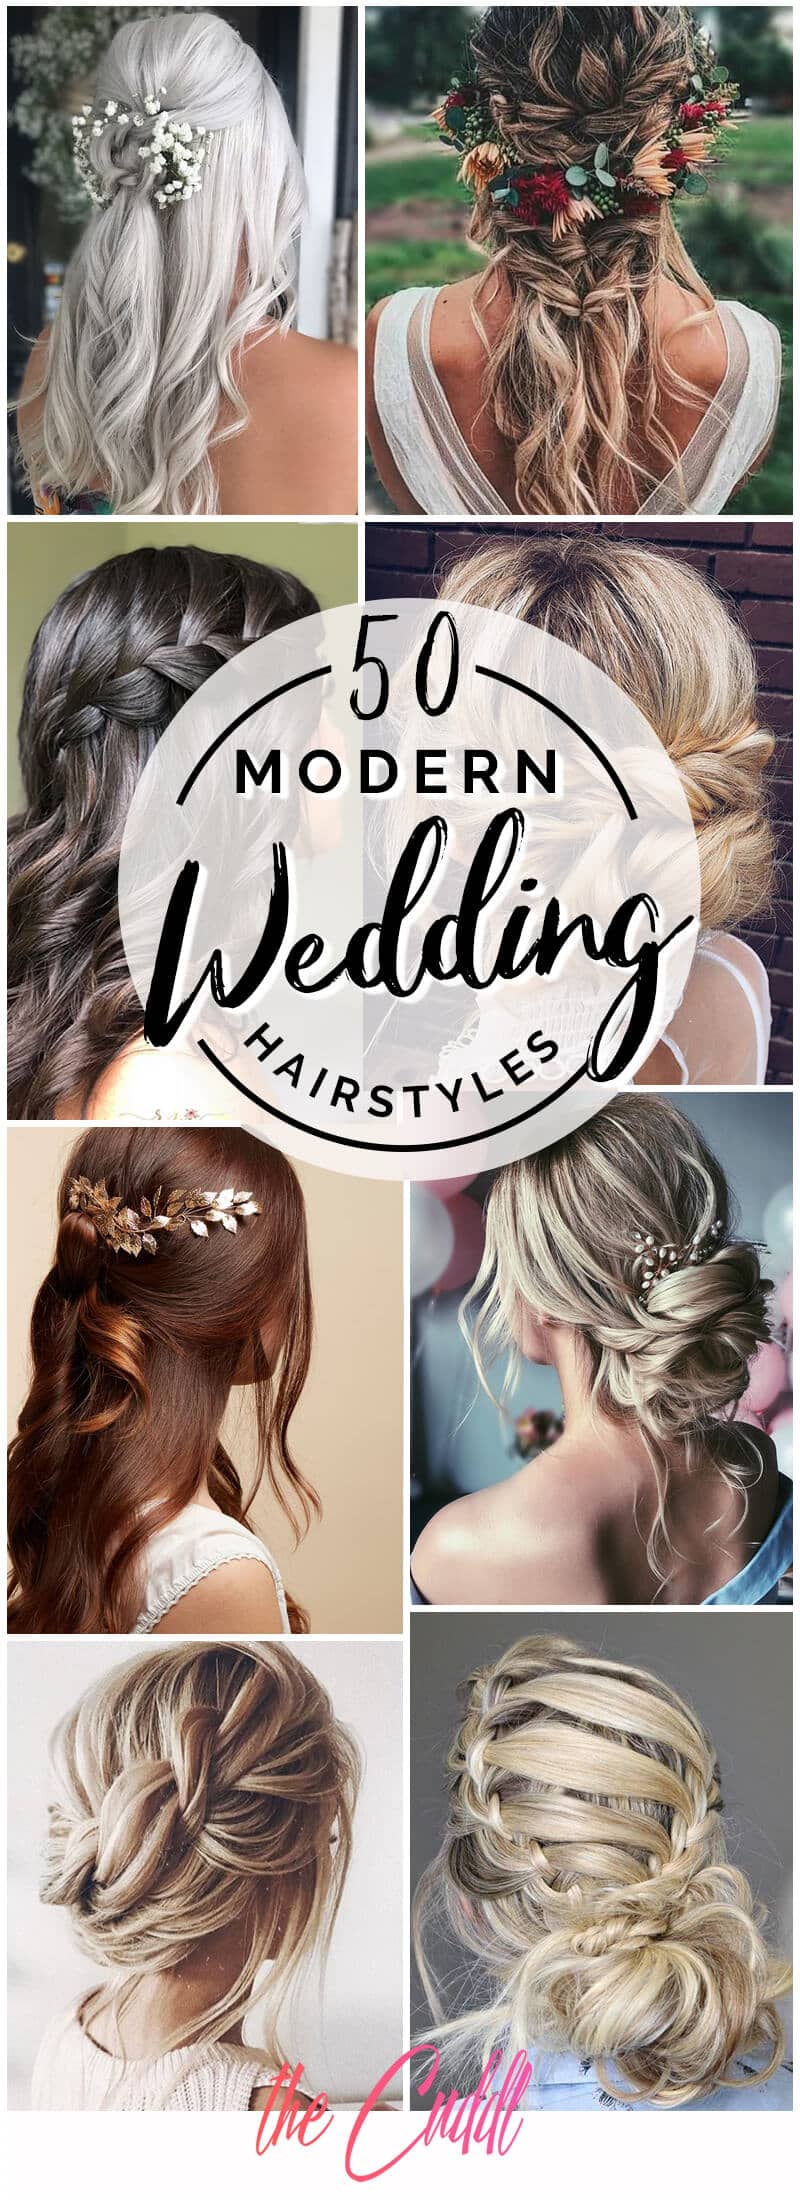 50 Modern Wedding Hairstyle Ideas For 2020